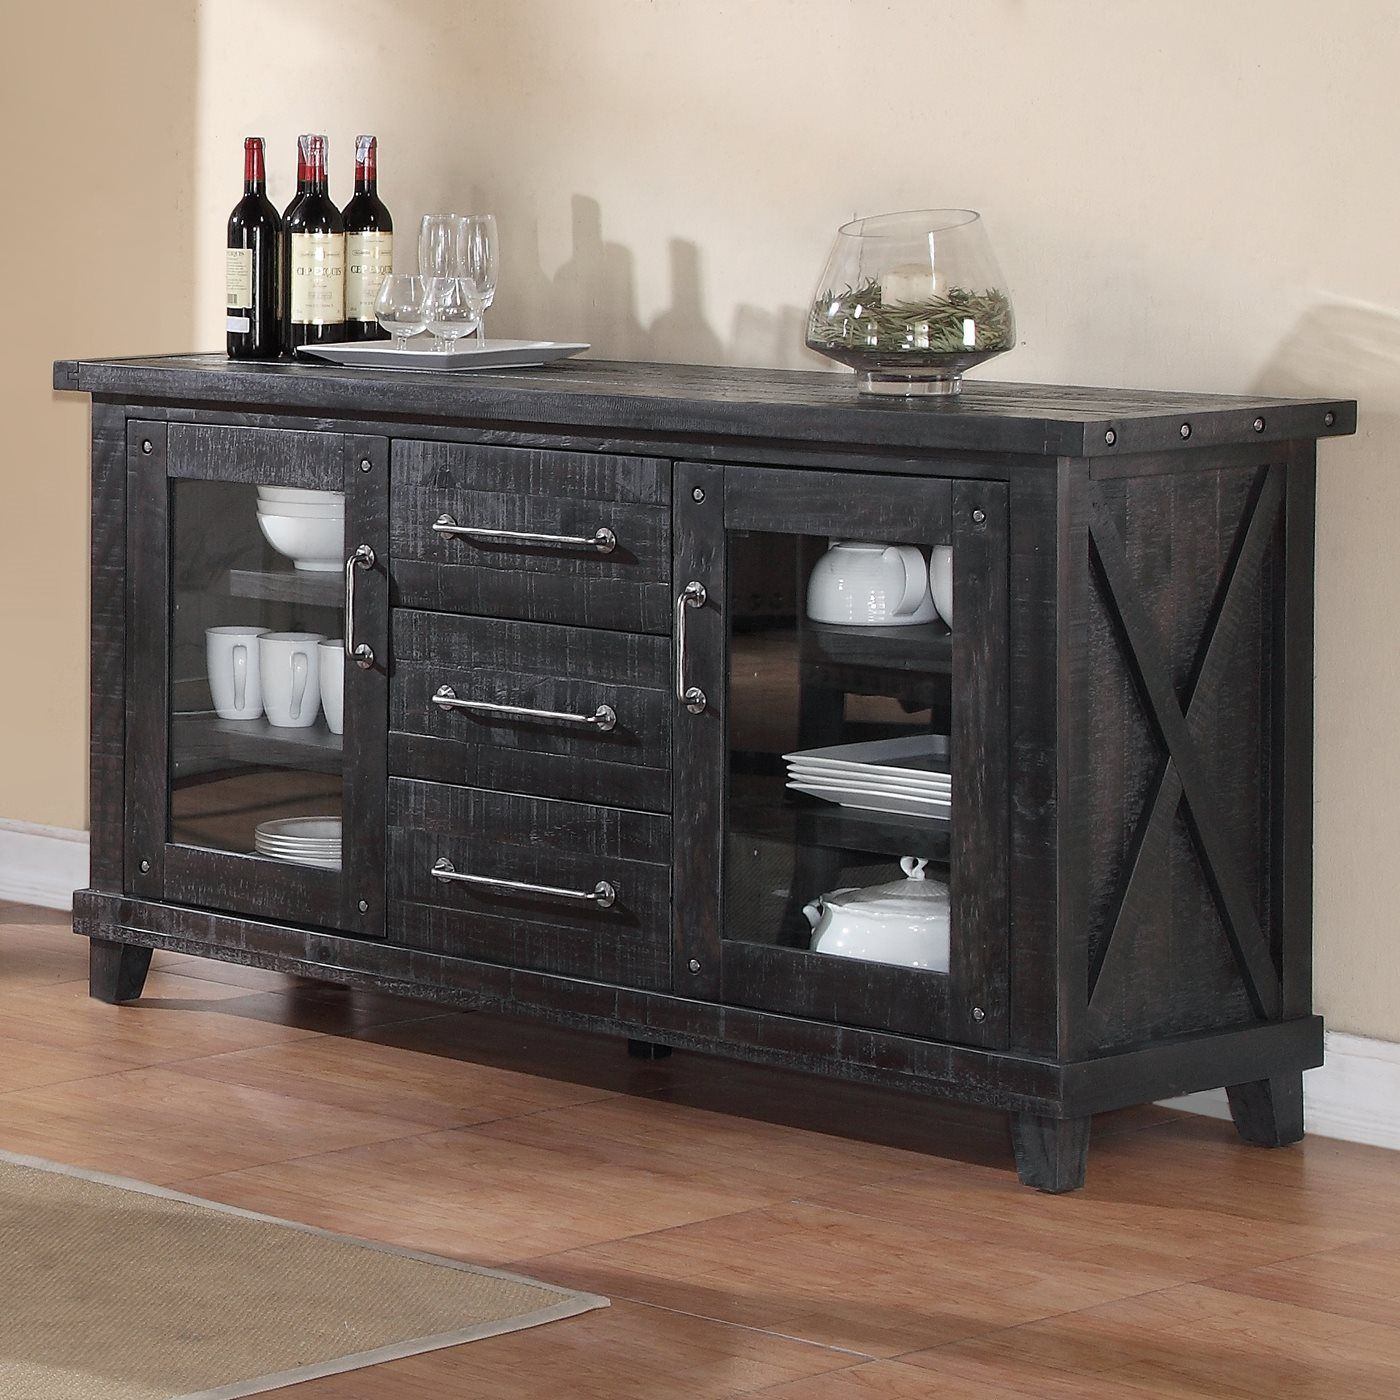 Shop Modus Furniture  7YC973 Yosemite Sideboard at ATG Stores. Browse our buffets, sideboards & hutches, all with free shipping and best price guaranteed.